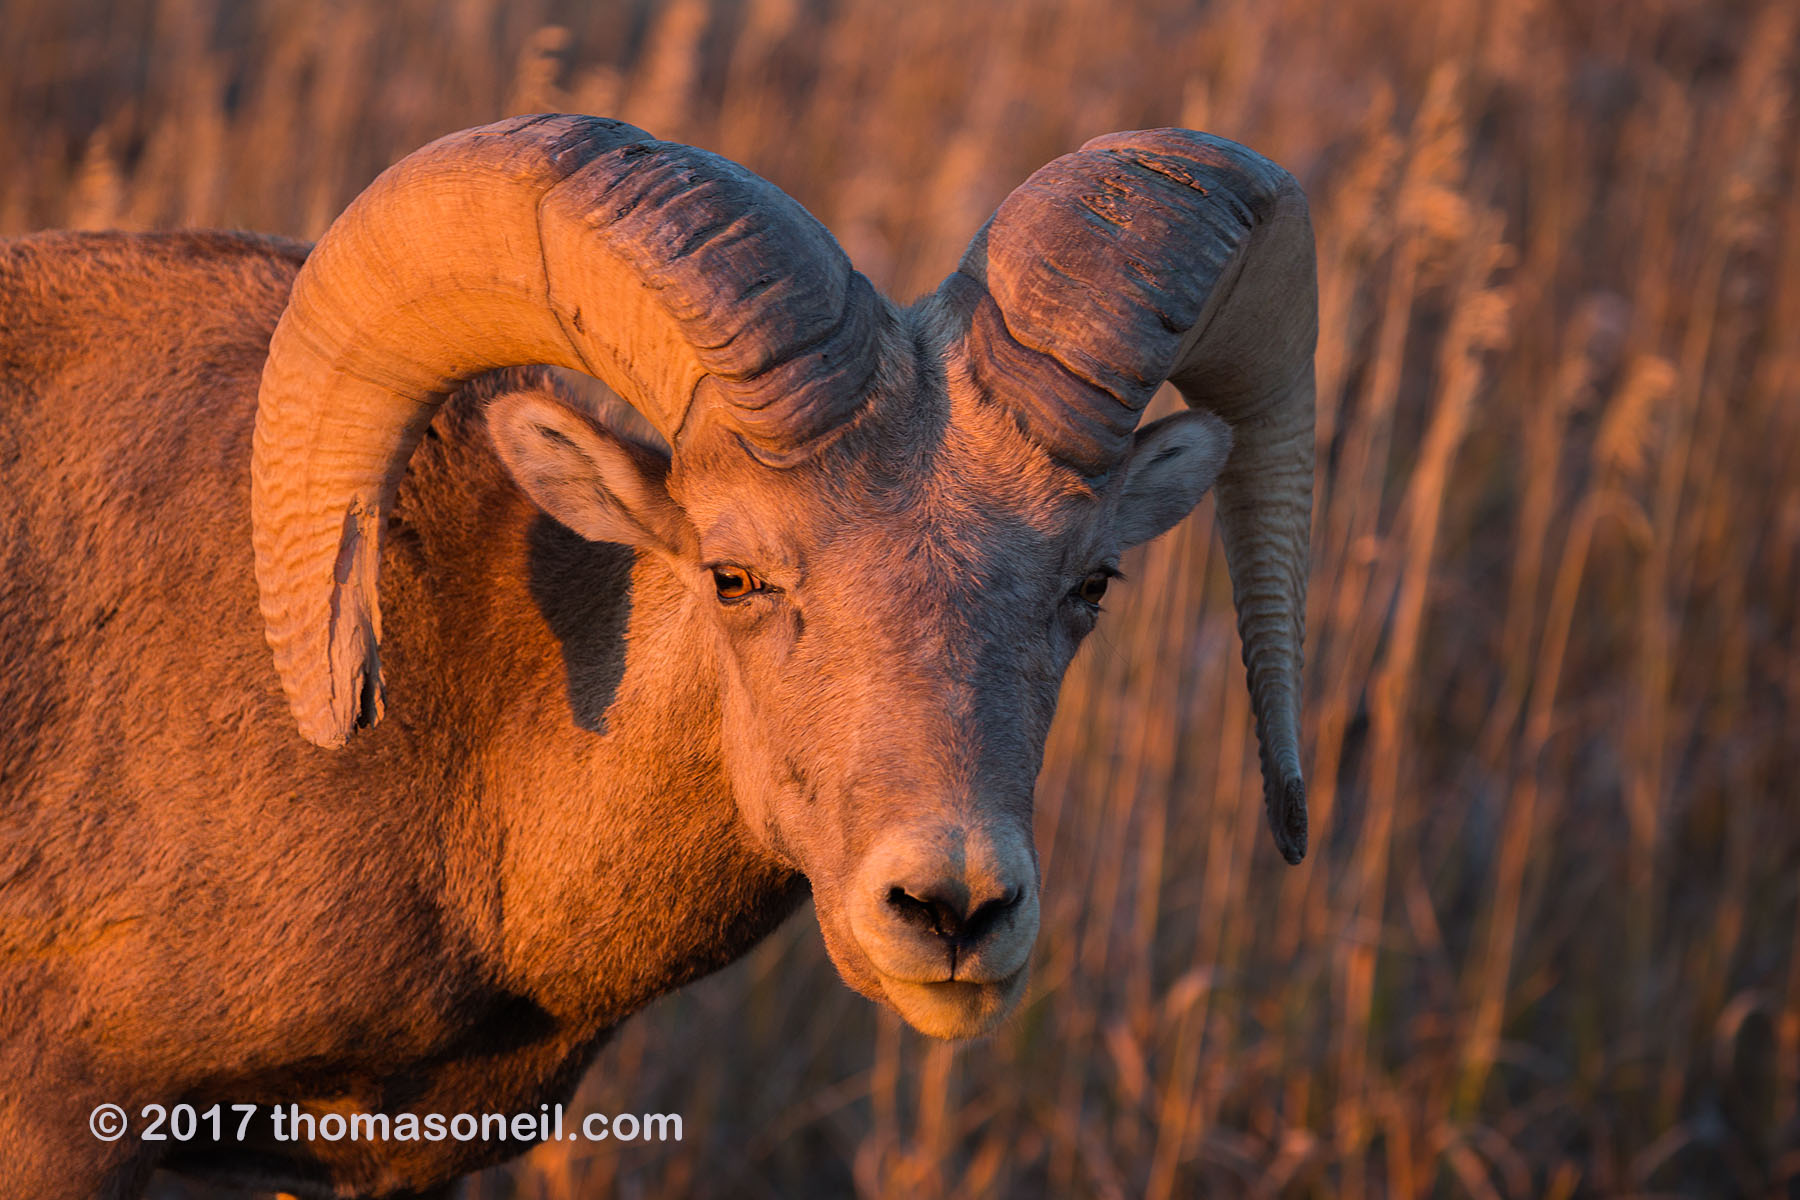 Bighorn in the Badlands, South Dakota, September 2017.  Note the difference in light between this image taken just before sunset and the next image in the slideshow taken three hours after sunrise the next day.  Click for next photo.